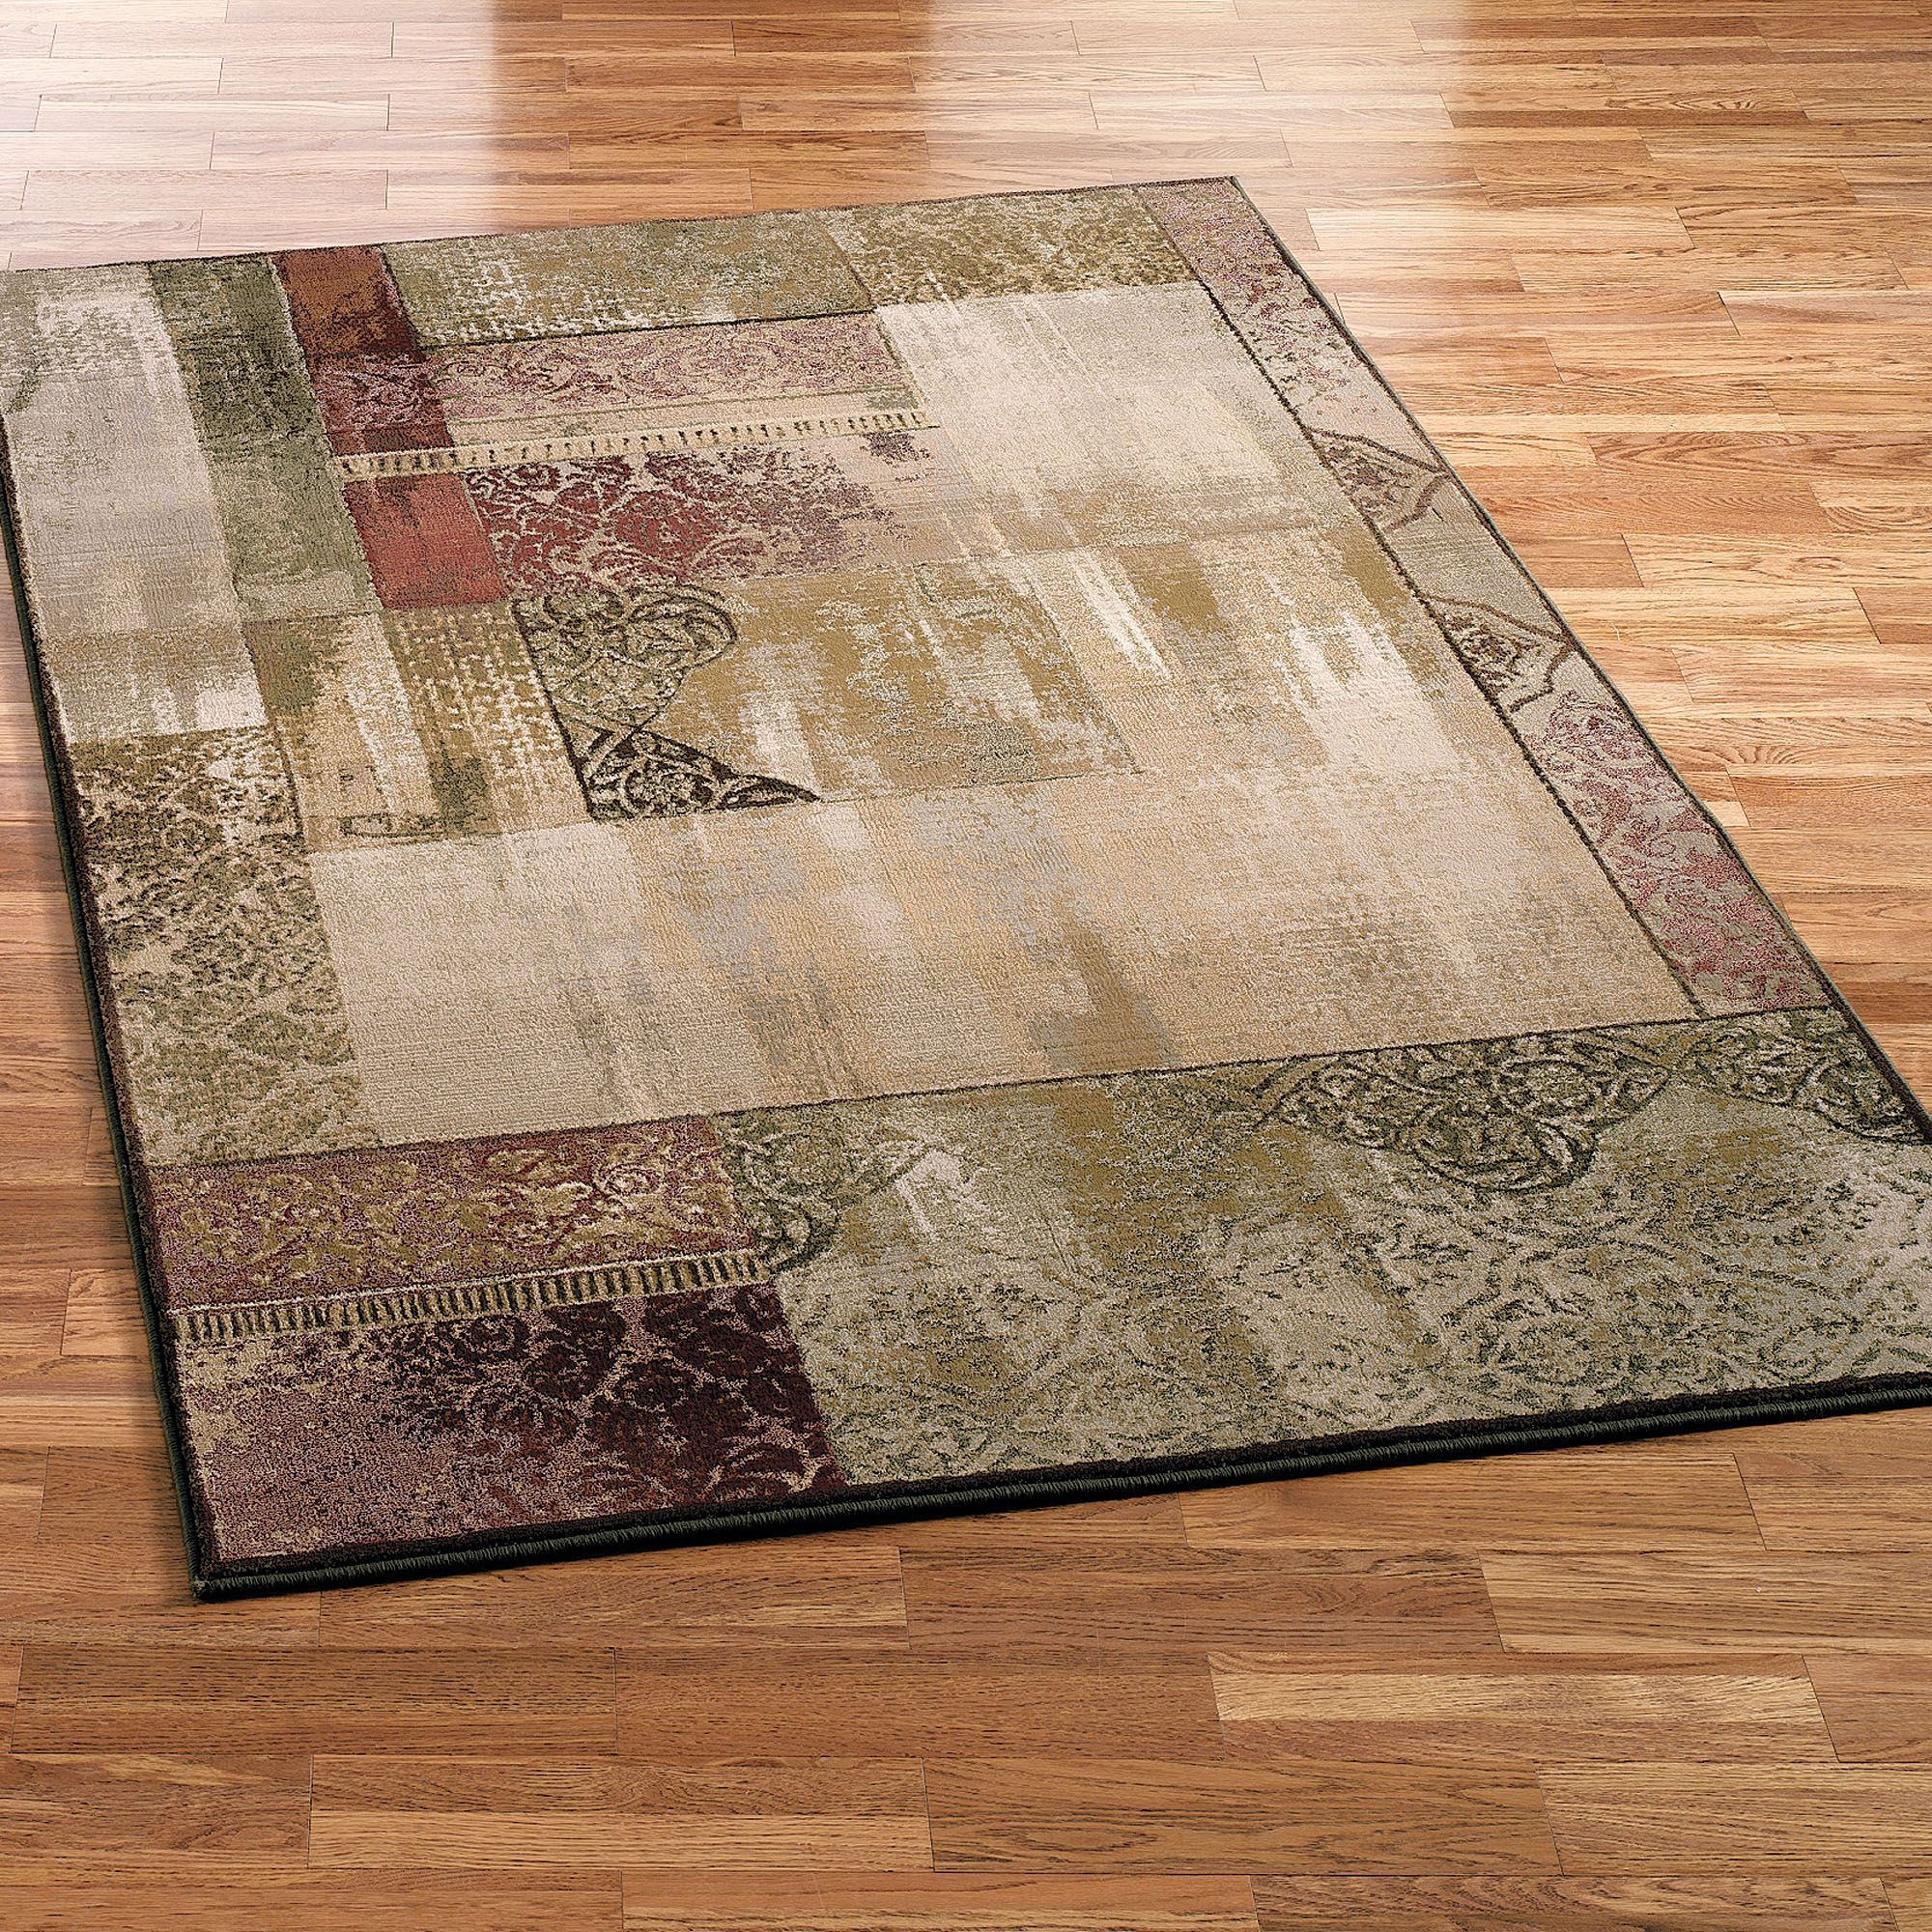 gallery about floor rug details dorothy an item view click calvert rugs its to on image